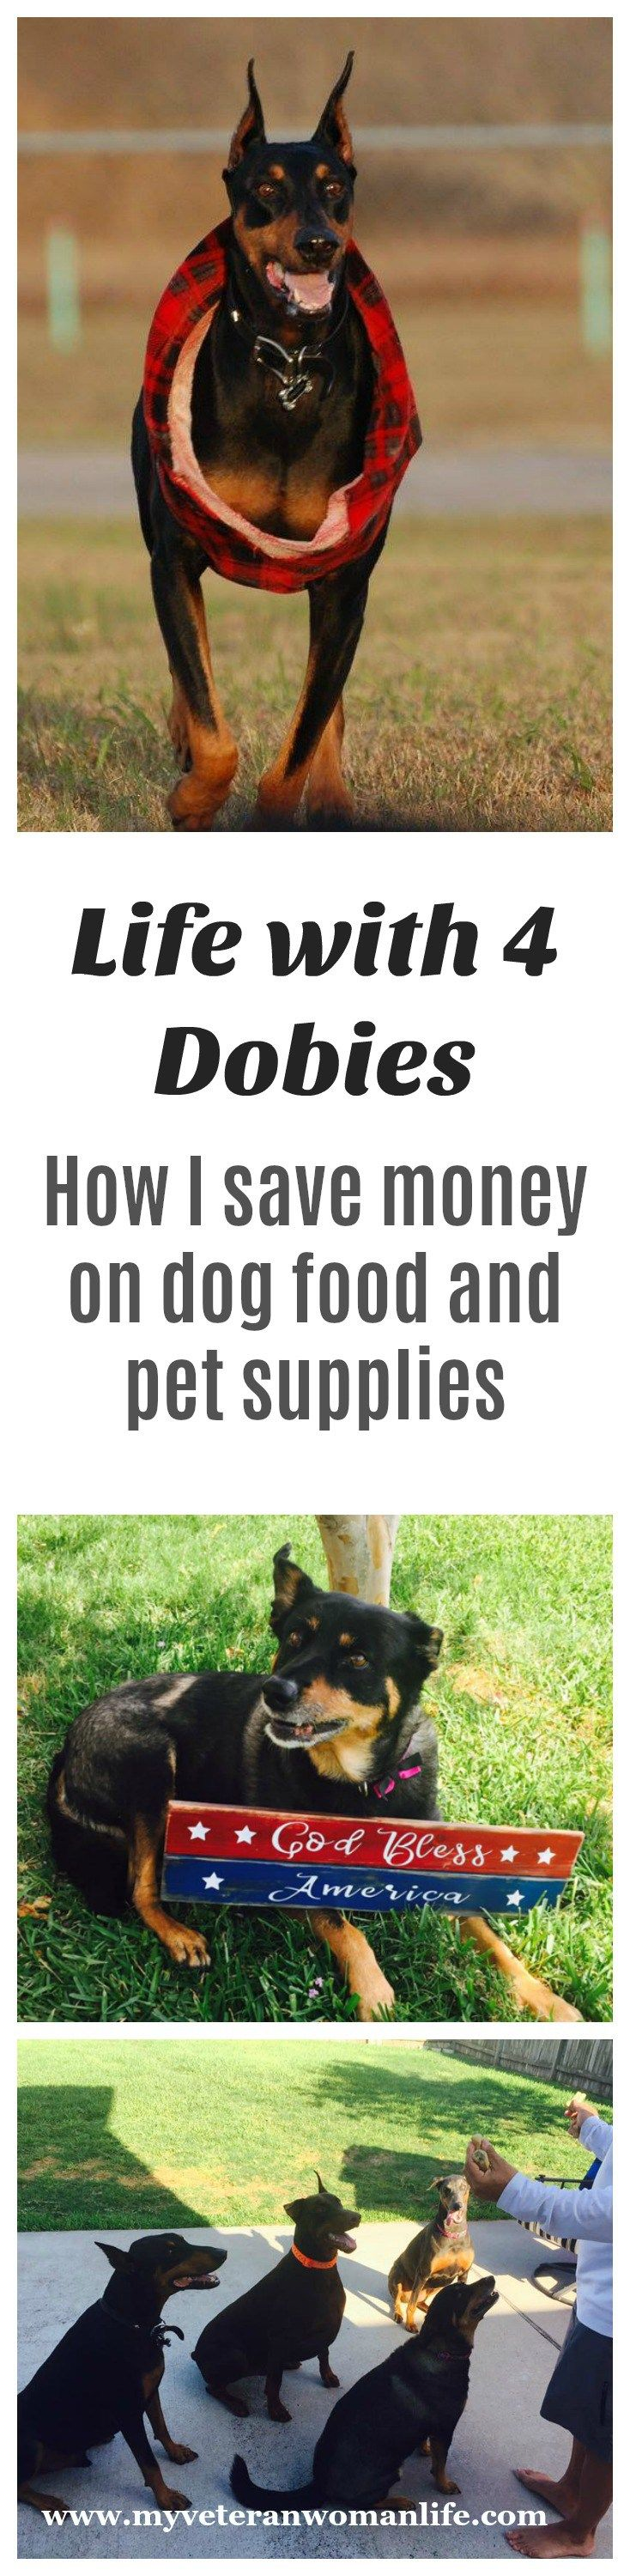 Dog food and pet supplies can be a huge expense when you have four really big dogs to feed! I'm always on the lookout for savings on dog food and supplies.